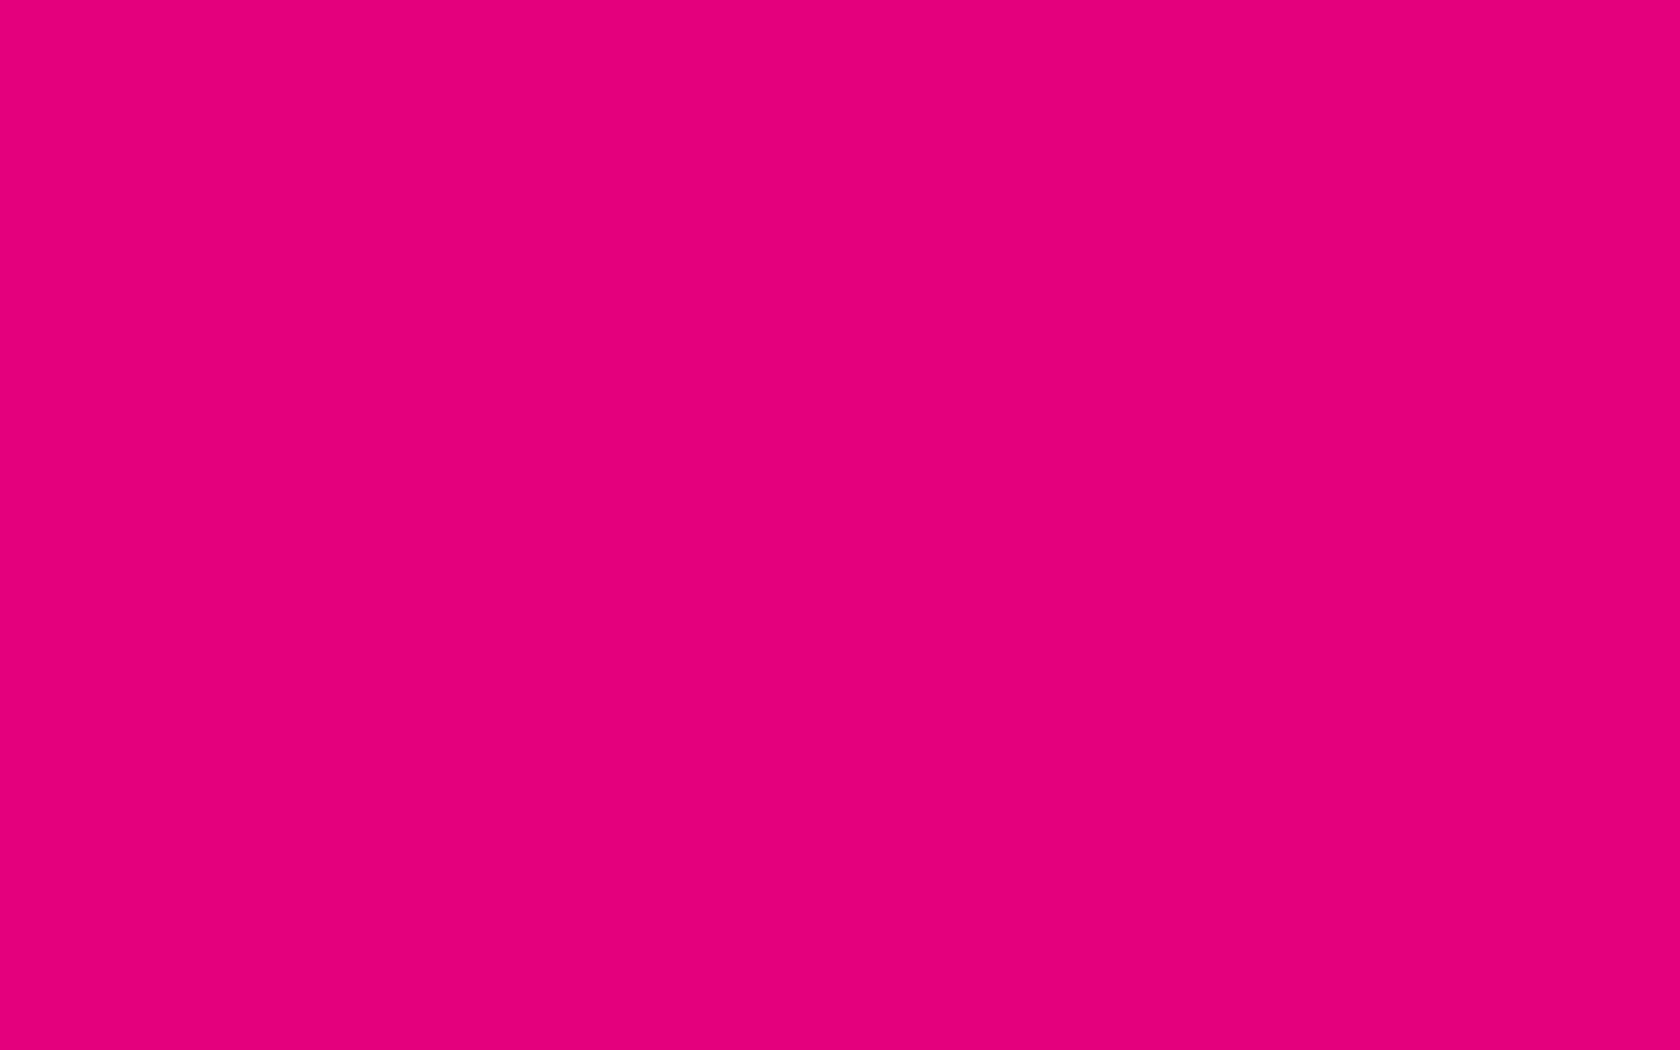 1680x1050 Mexican Pink Solid Color Background